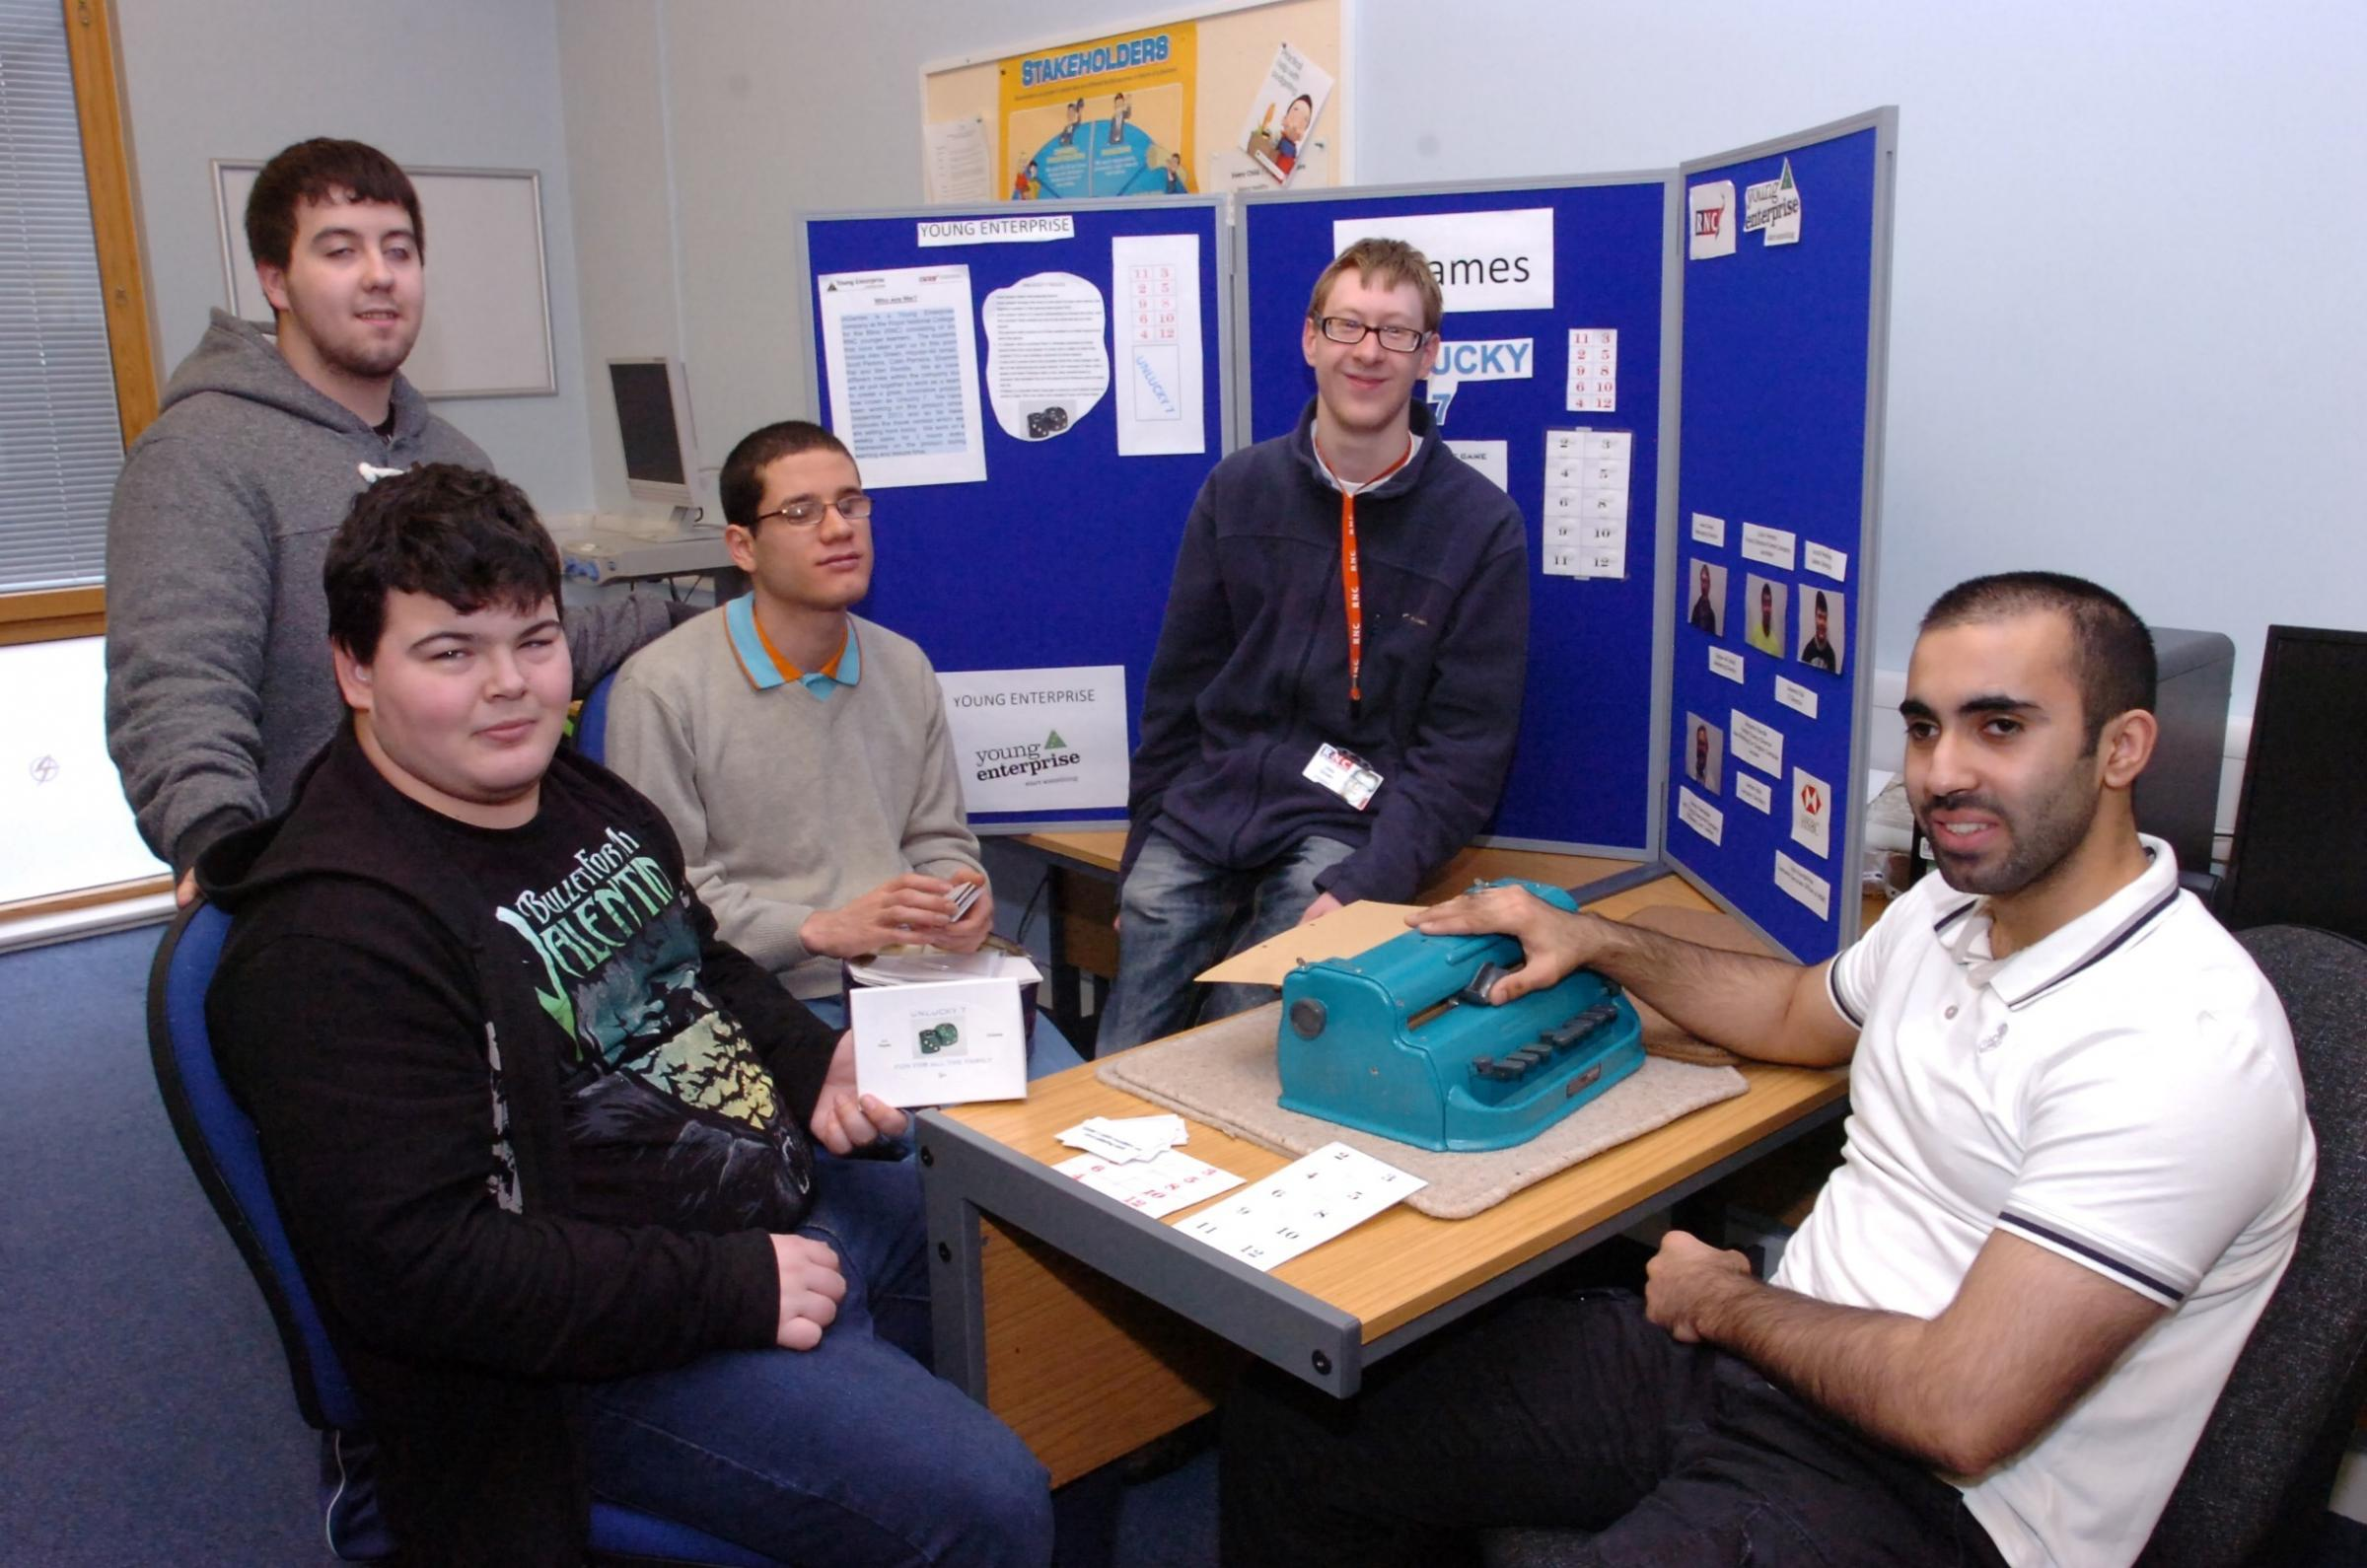 Braille board game made at Hereford college could be national first